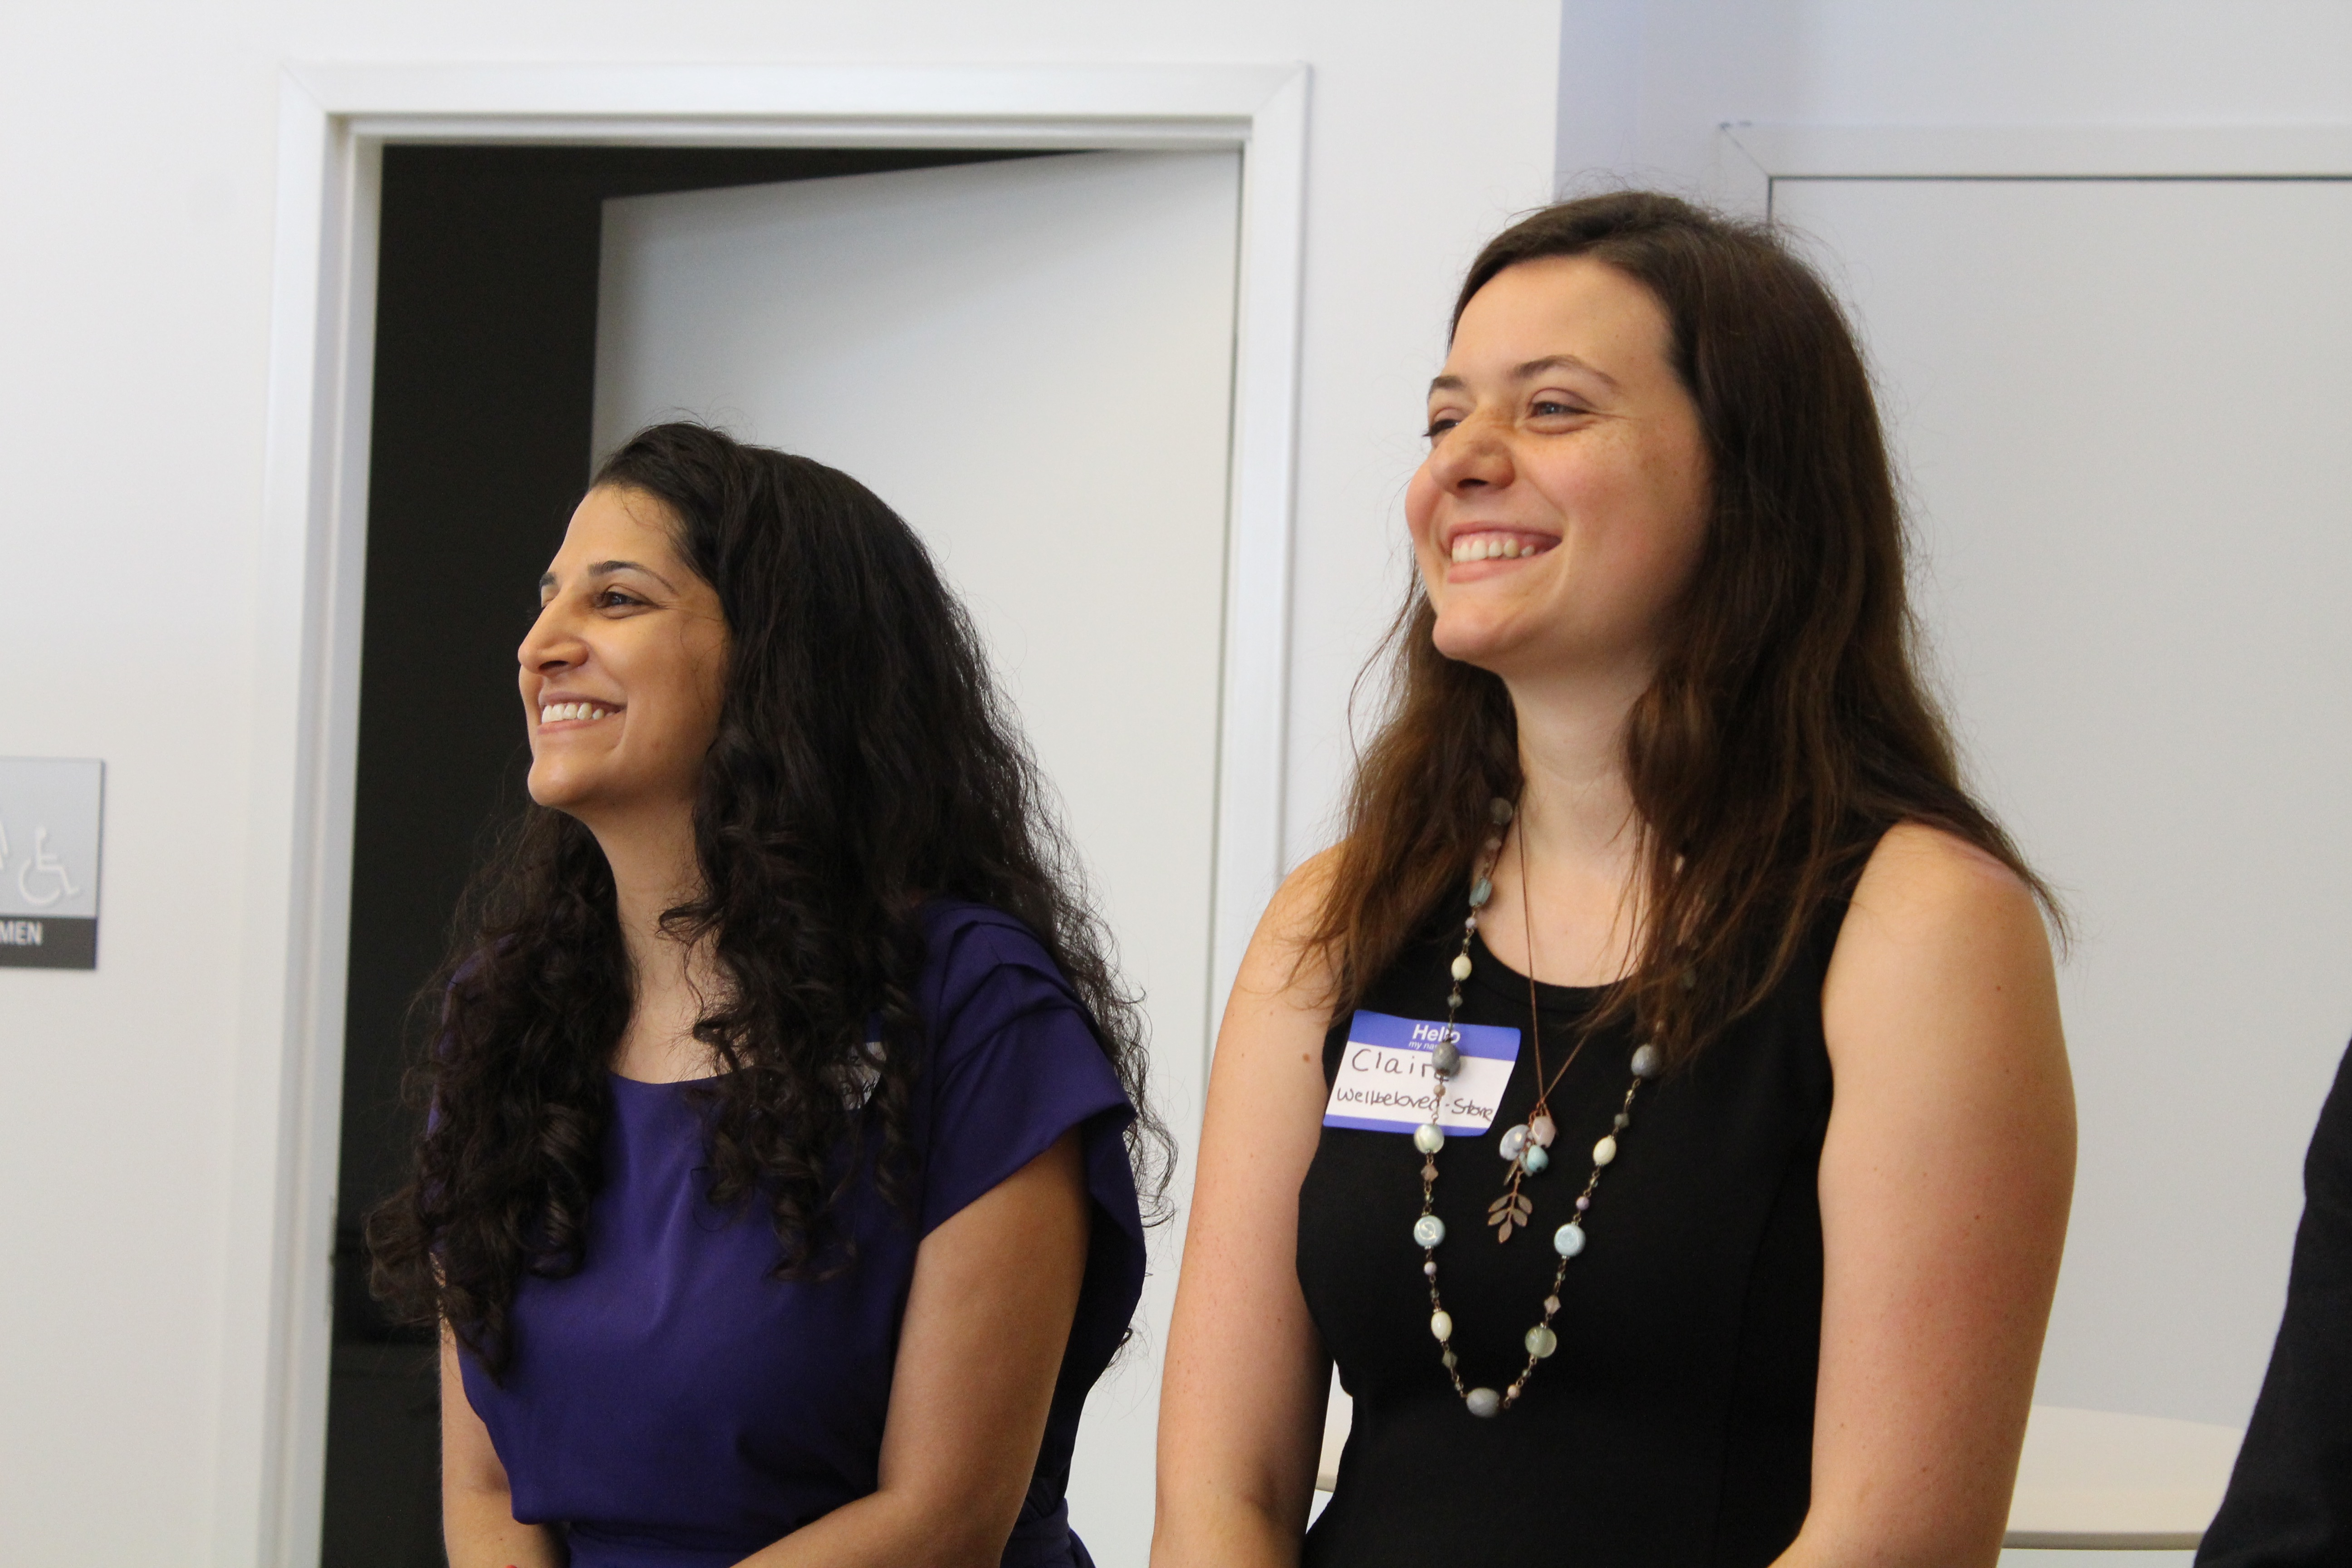 Rupa in a purple dress and Claire in a black dress standing next to each other, both looking away from the camera and smiling.